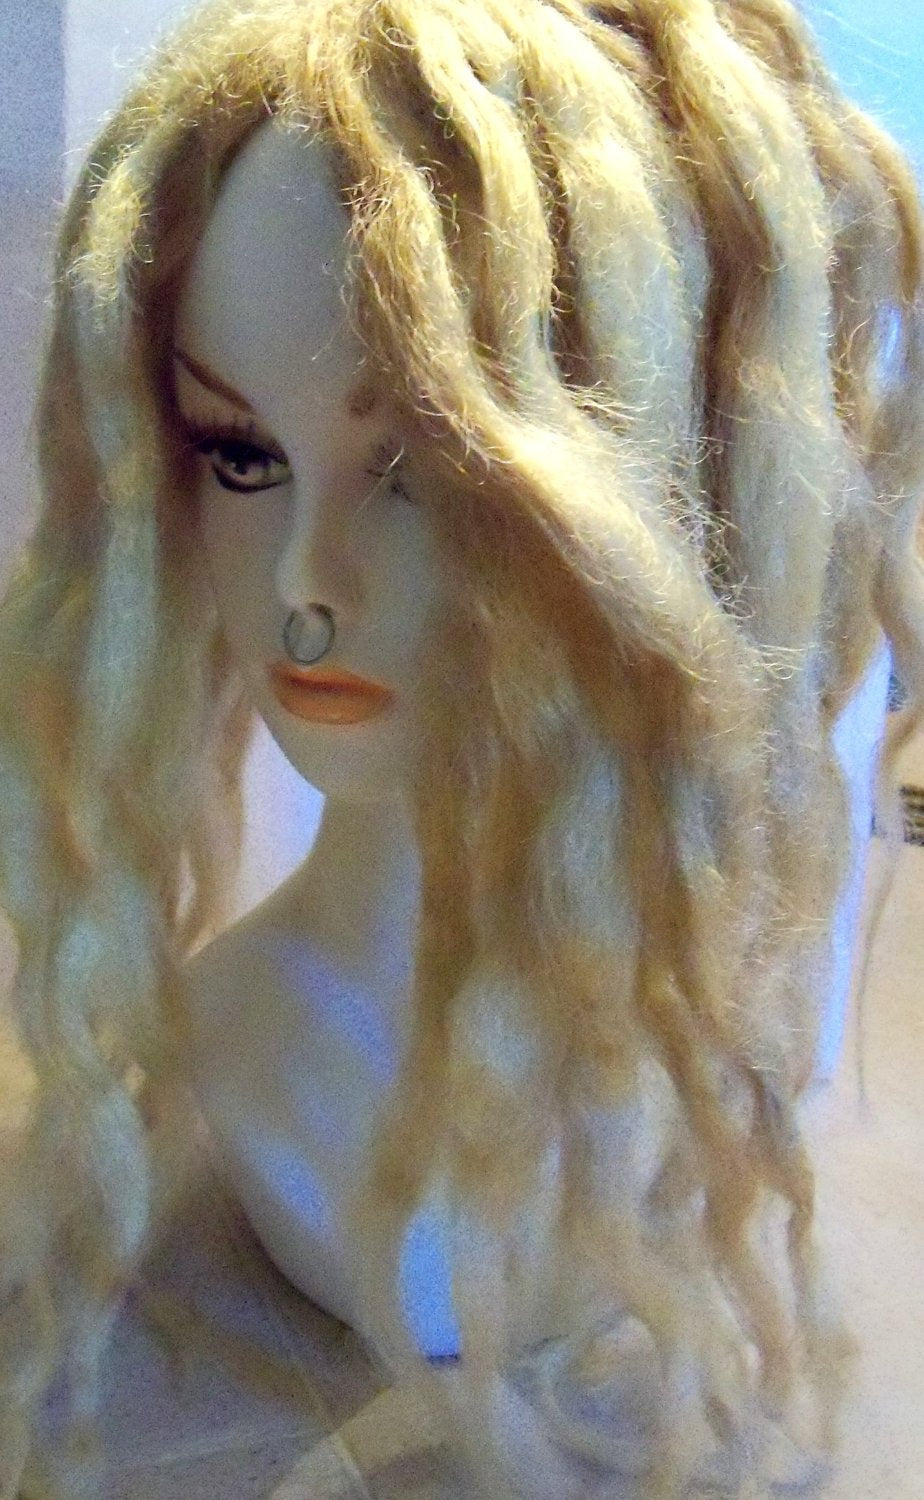 60 Wavy Synthetic Dreads Dreadlock Hair Extensions or Dread Falls inPlatinum Ash Blonde